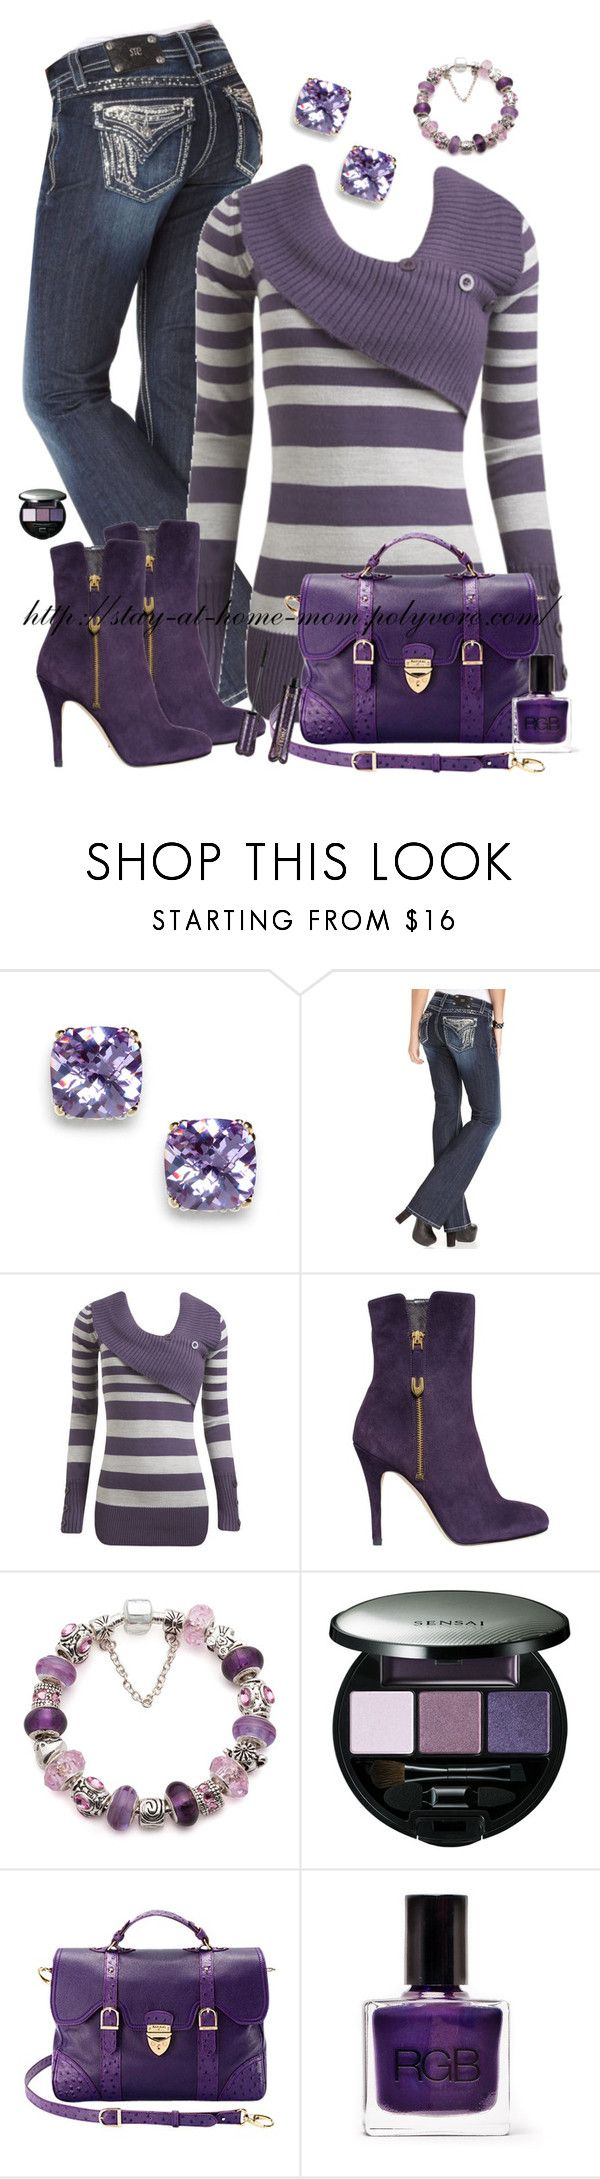 """PURPLE"" by amber-1991 ❤ liked on Polyvore featuring BaubleBar, Miss Me, Wet Seal, Joan & David, Sensai, Aspinal of London and tarte"